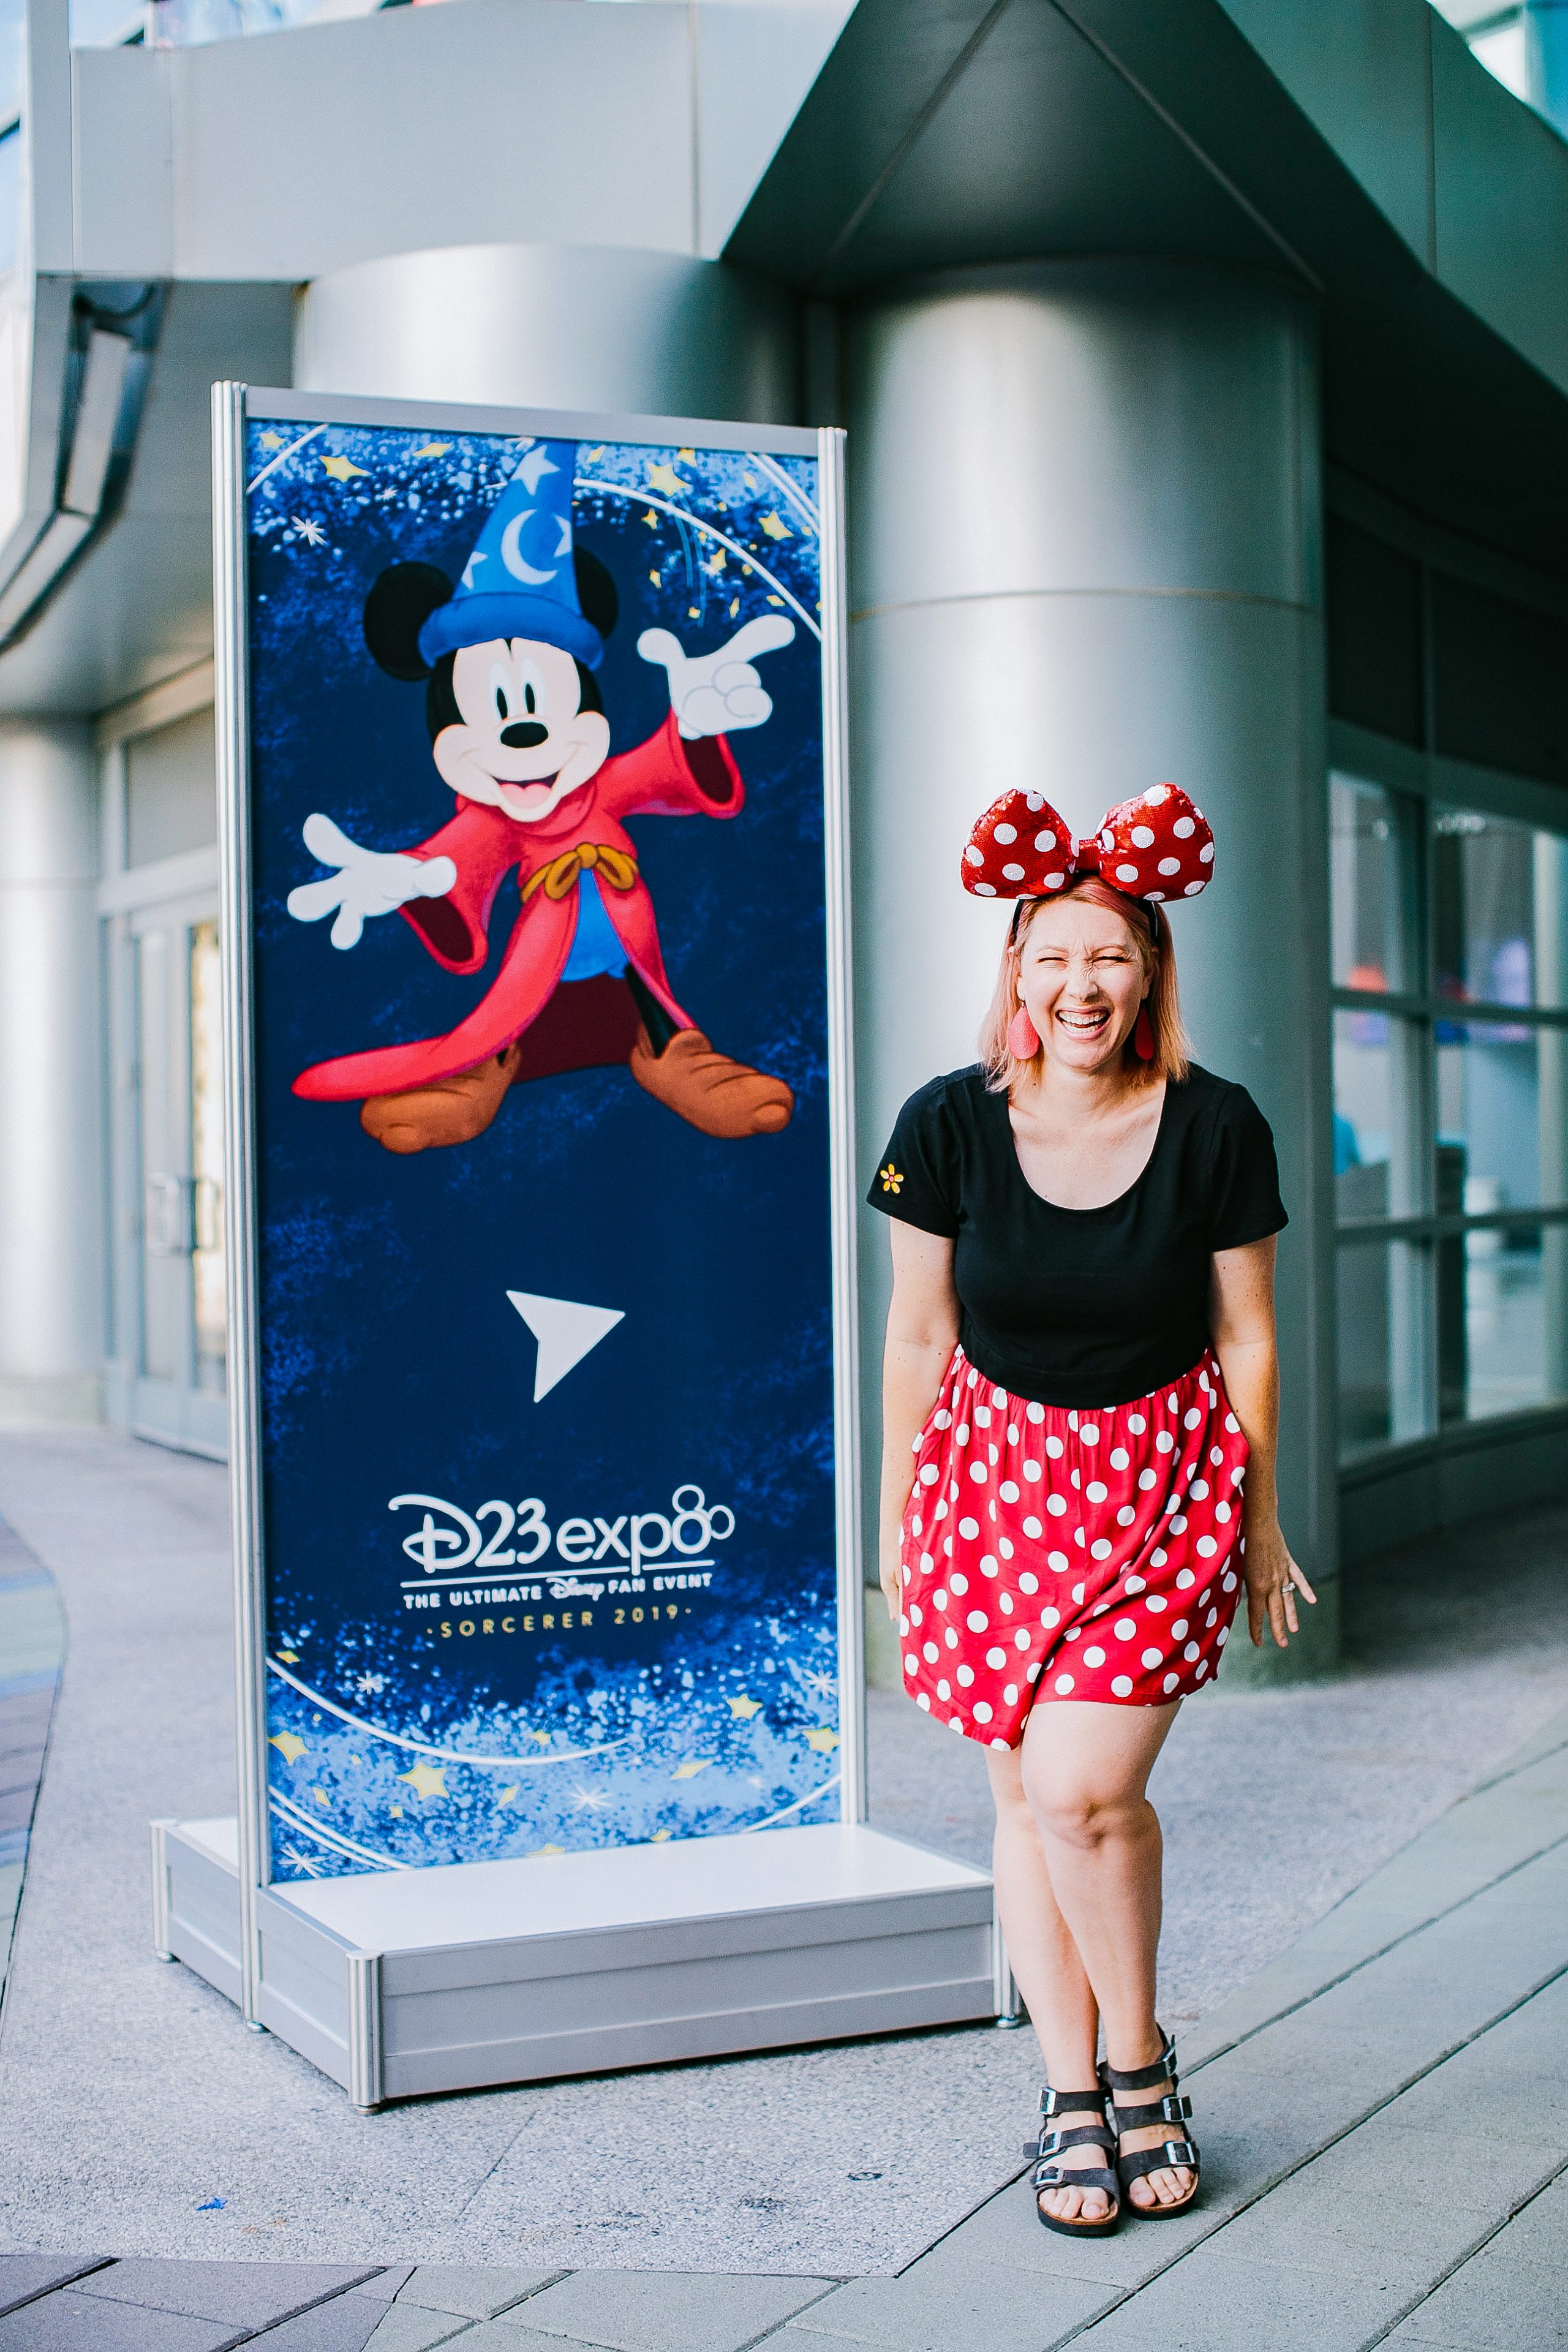 Looking for breaking Disney news? These are the latest updates from the D23 Expo about Disneyland, Disney World and Adventures by Disney!